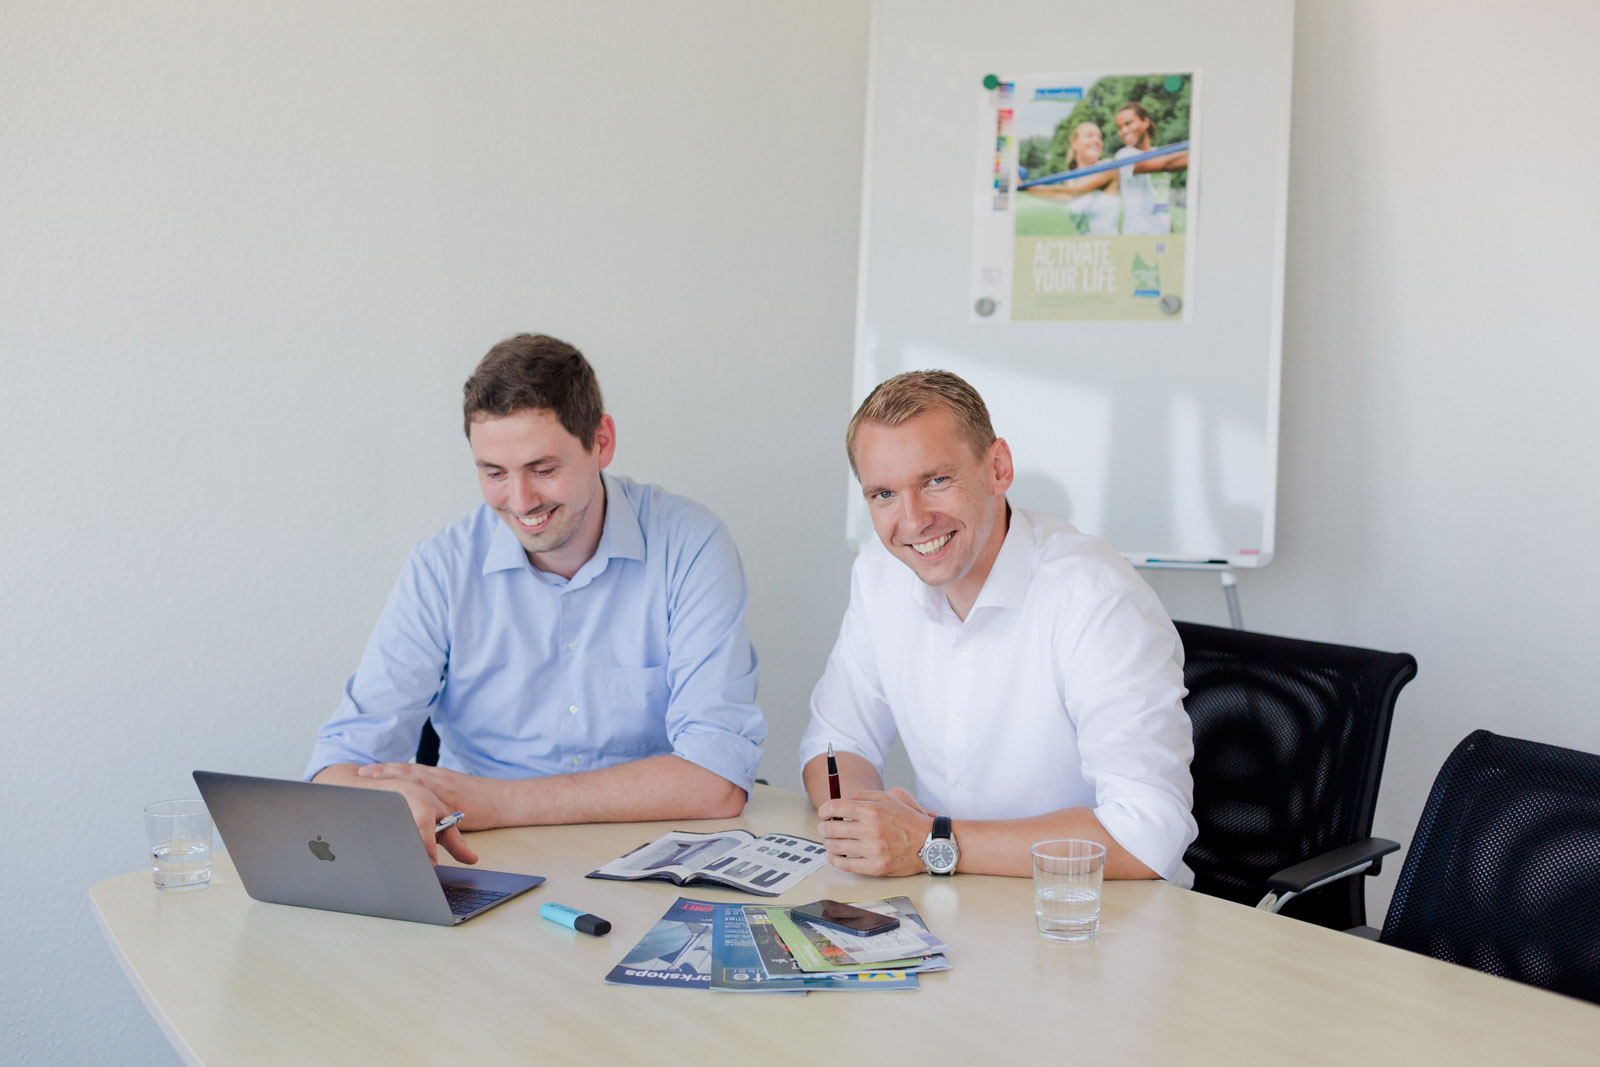 Mediaport Produktion - das Agentur-Team